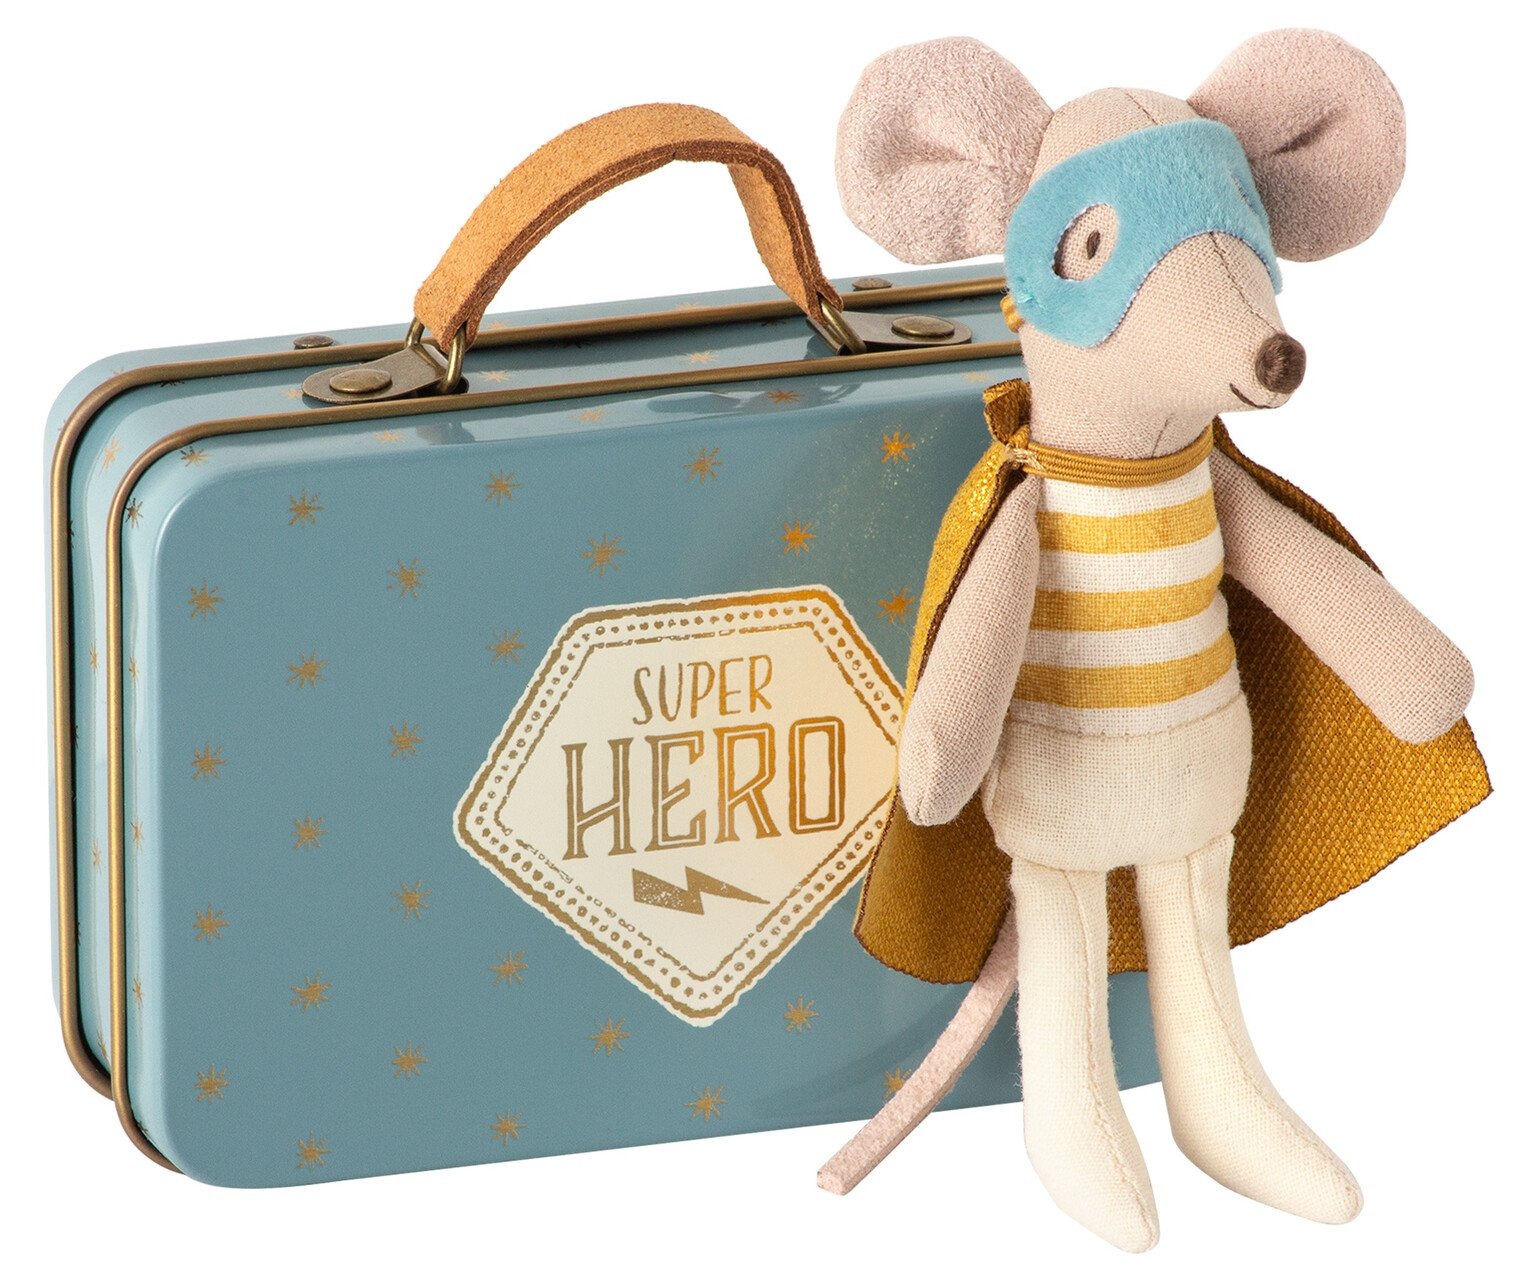 Superhero Mouse in Suitcase